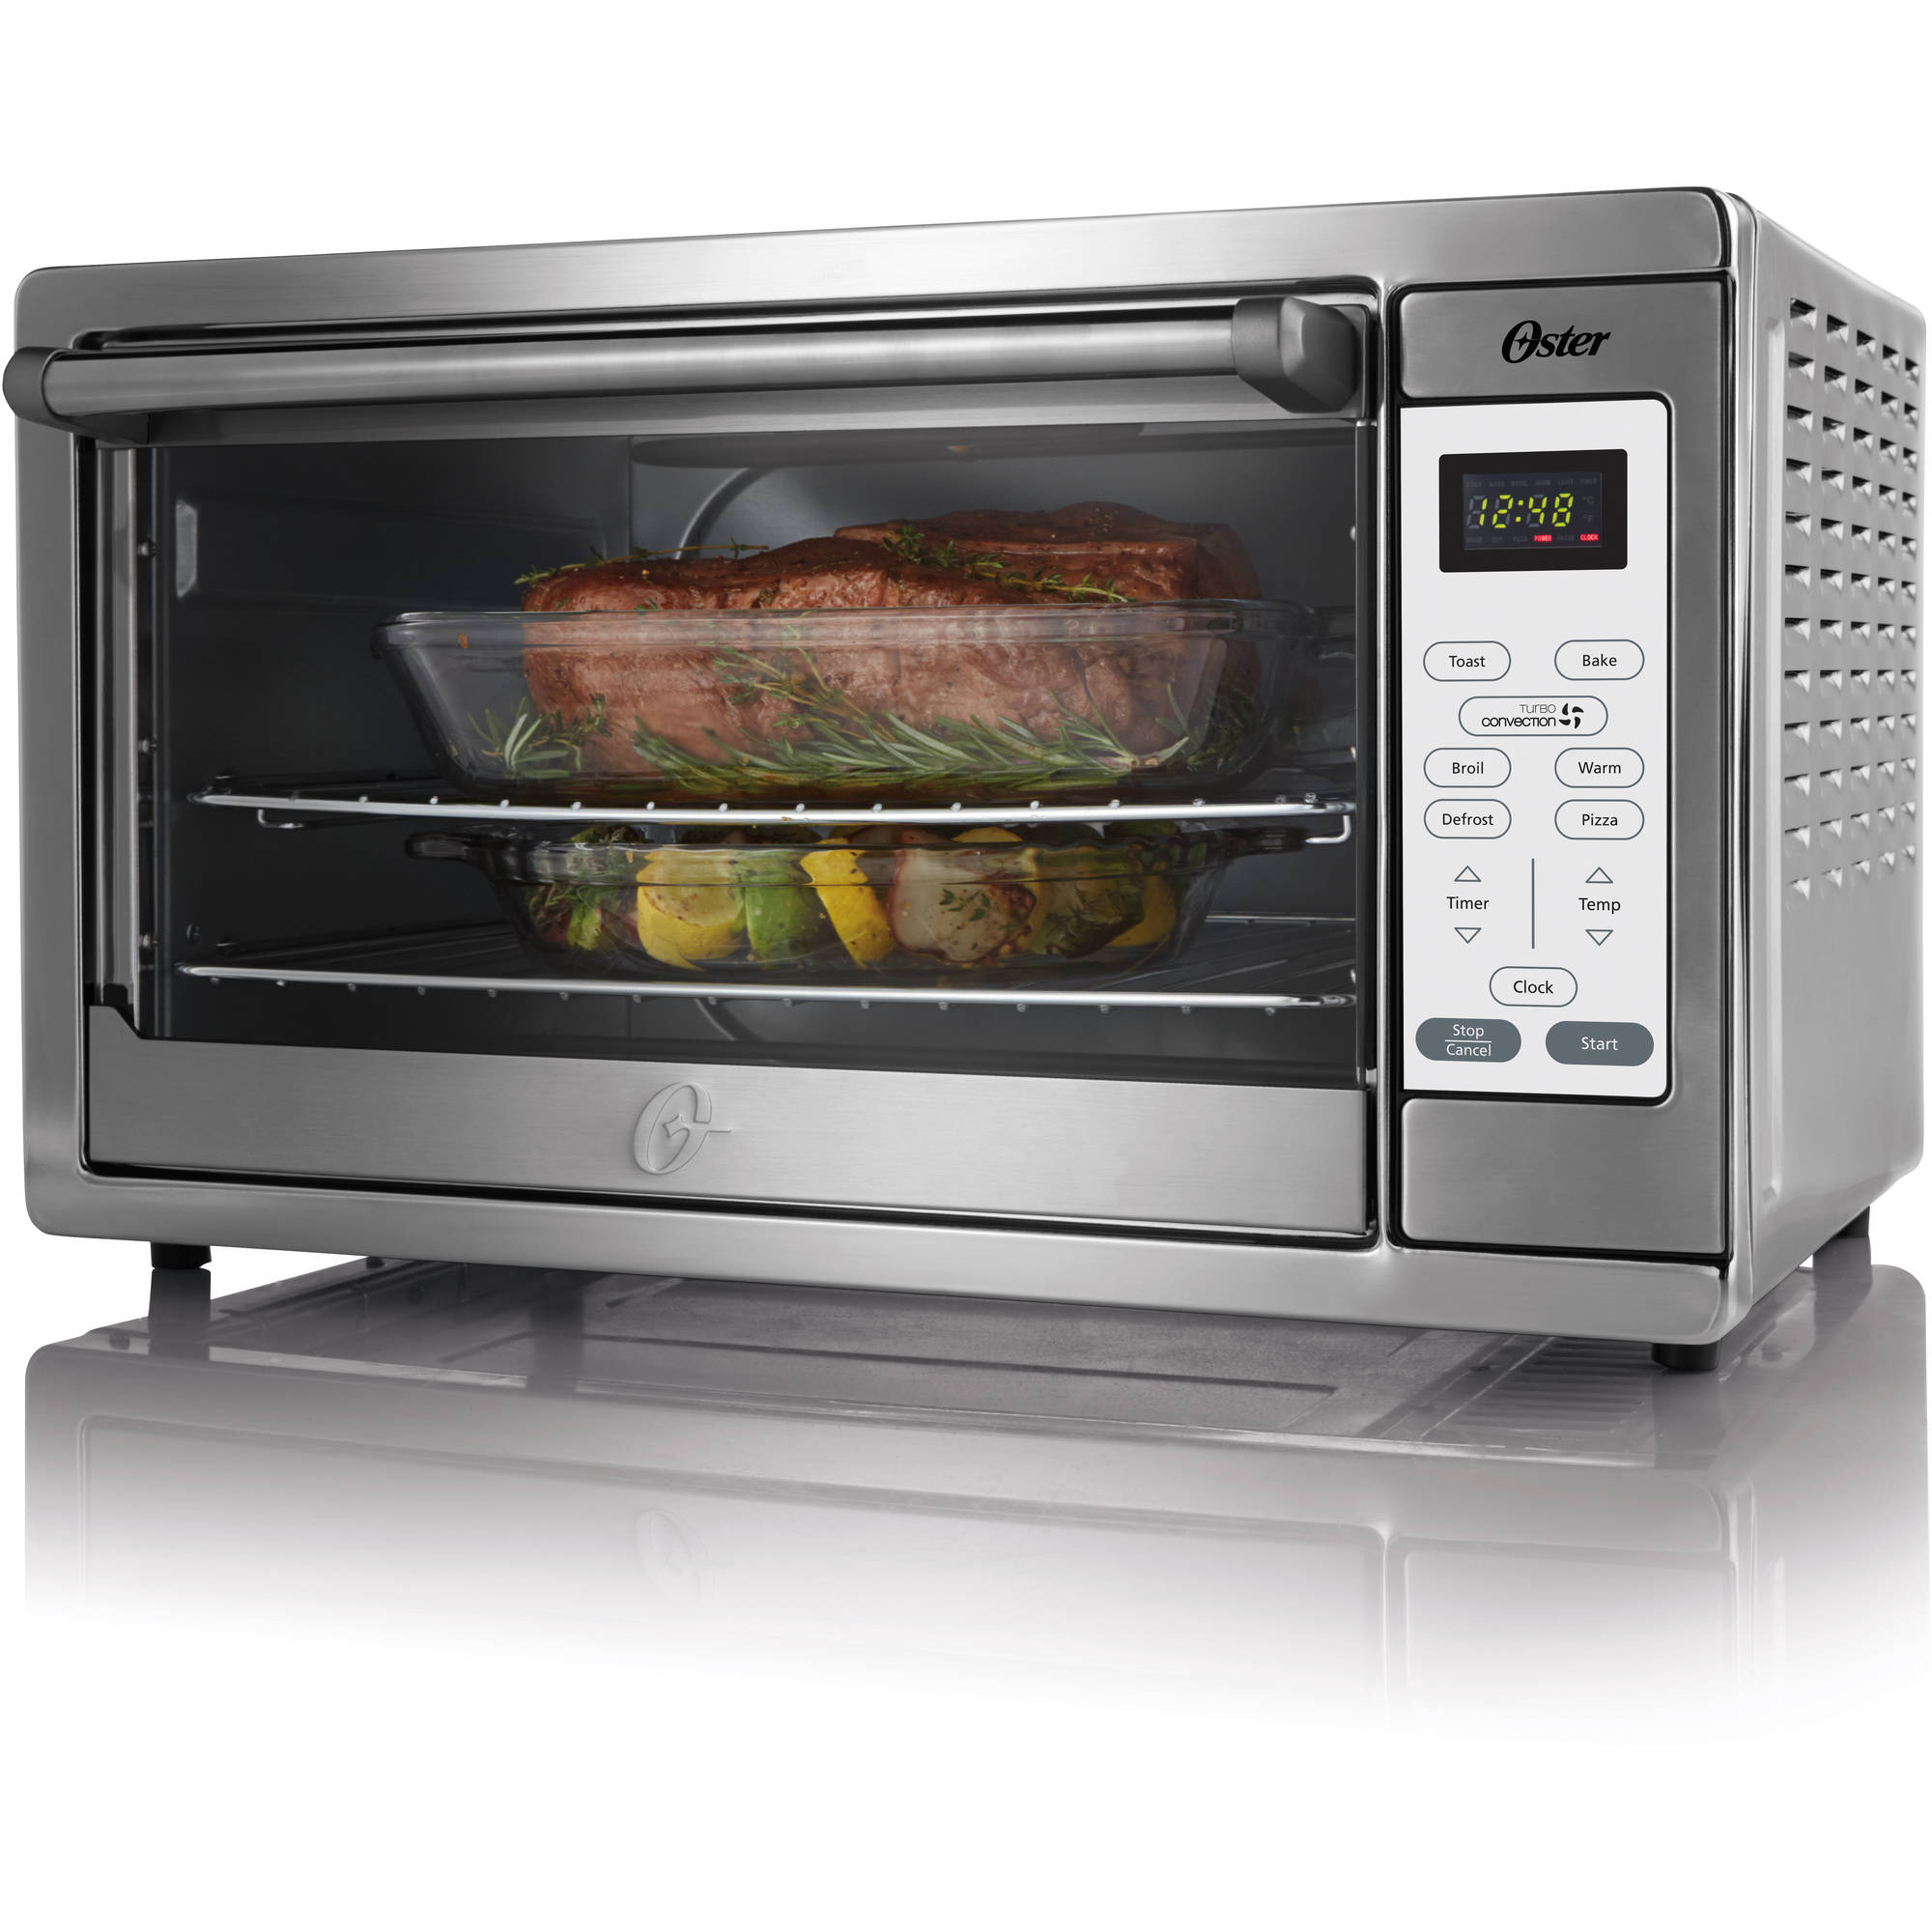 Oster Designed For Life Extra-Large Convection Countertop Oven, TSSTTVXLDG-002